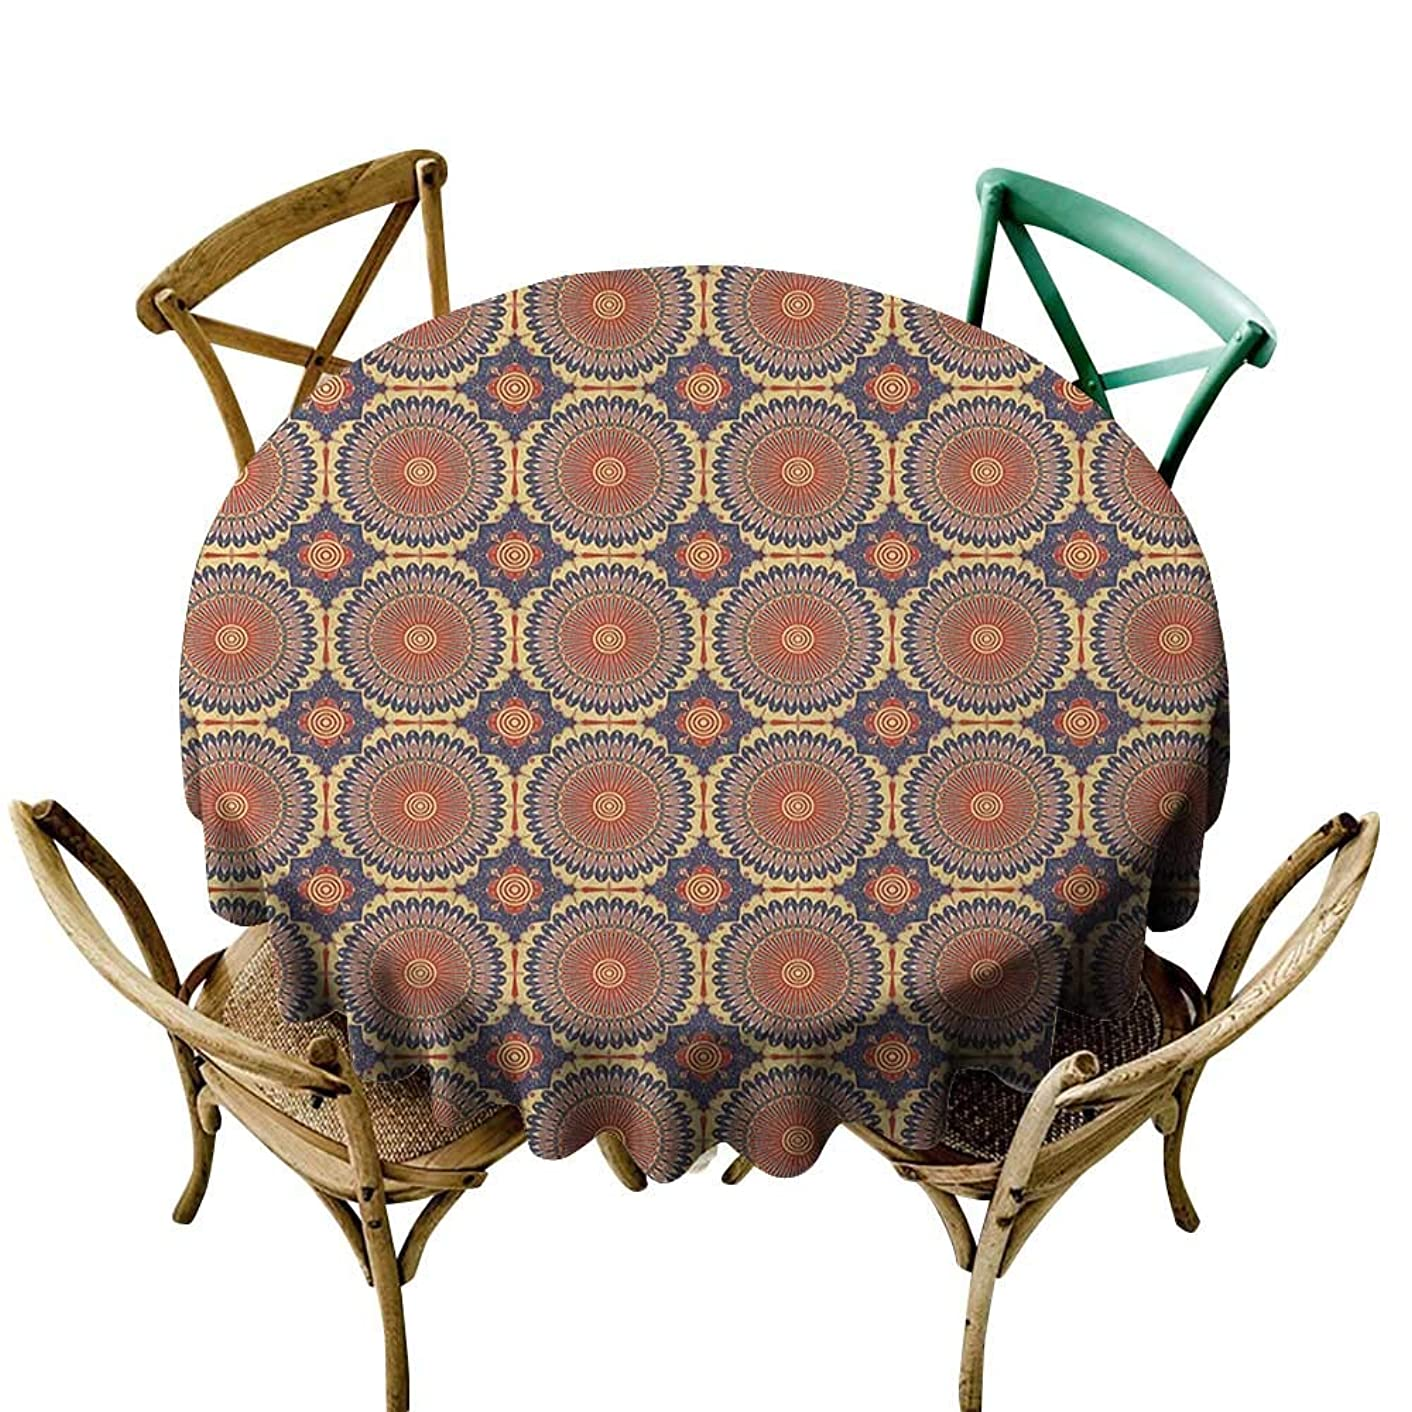 Wendell Joshua The Pattern Round Table Cloth 70 inch Mandala,Ethnic Round Figure with Arabesque Design Details Eastern Ancient Moorish Culture, Multicolor Indoor/Outdoor Spillproof Table Cloth